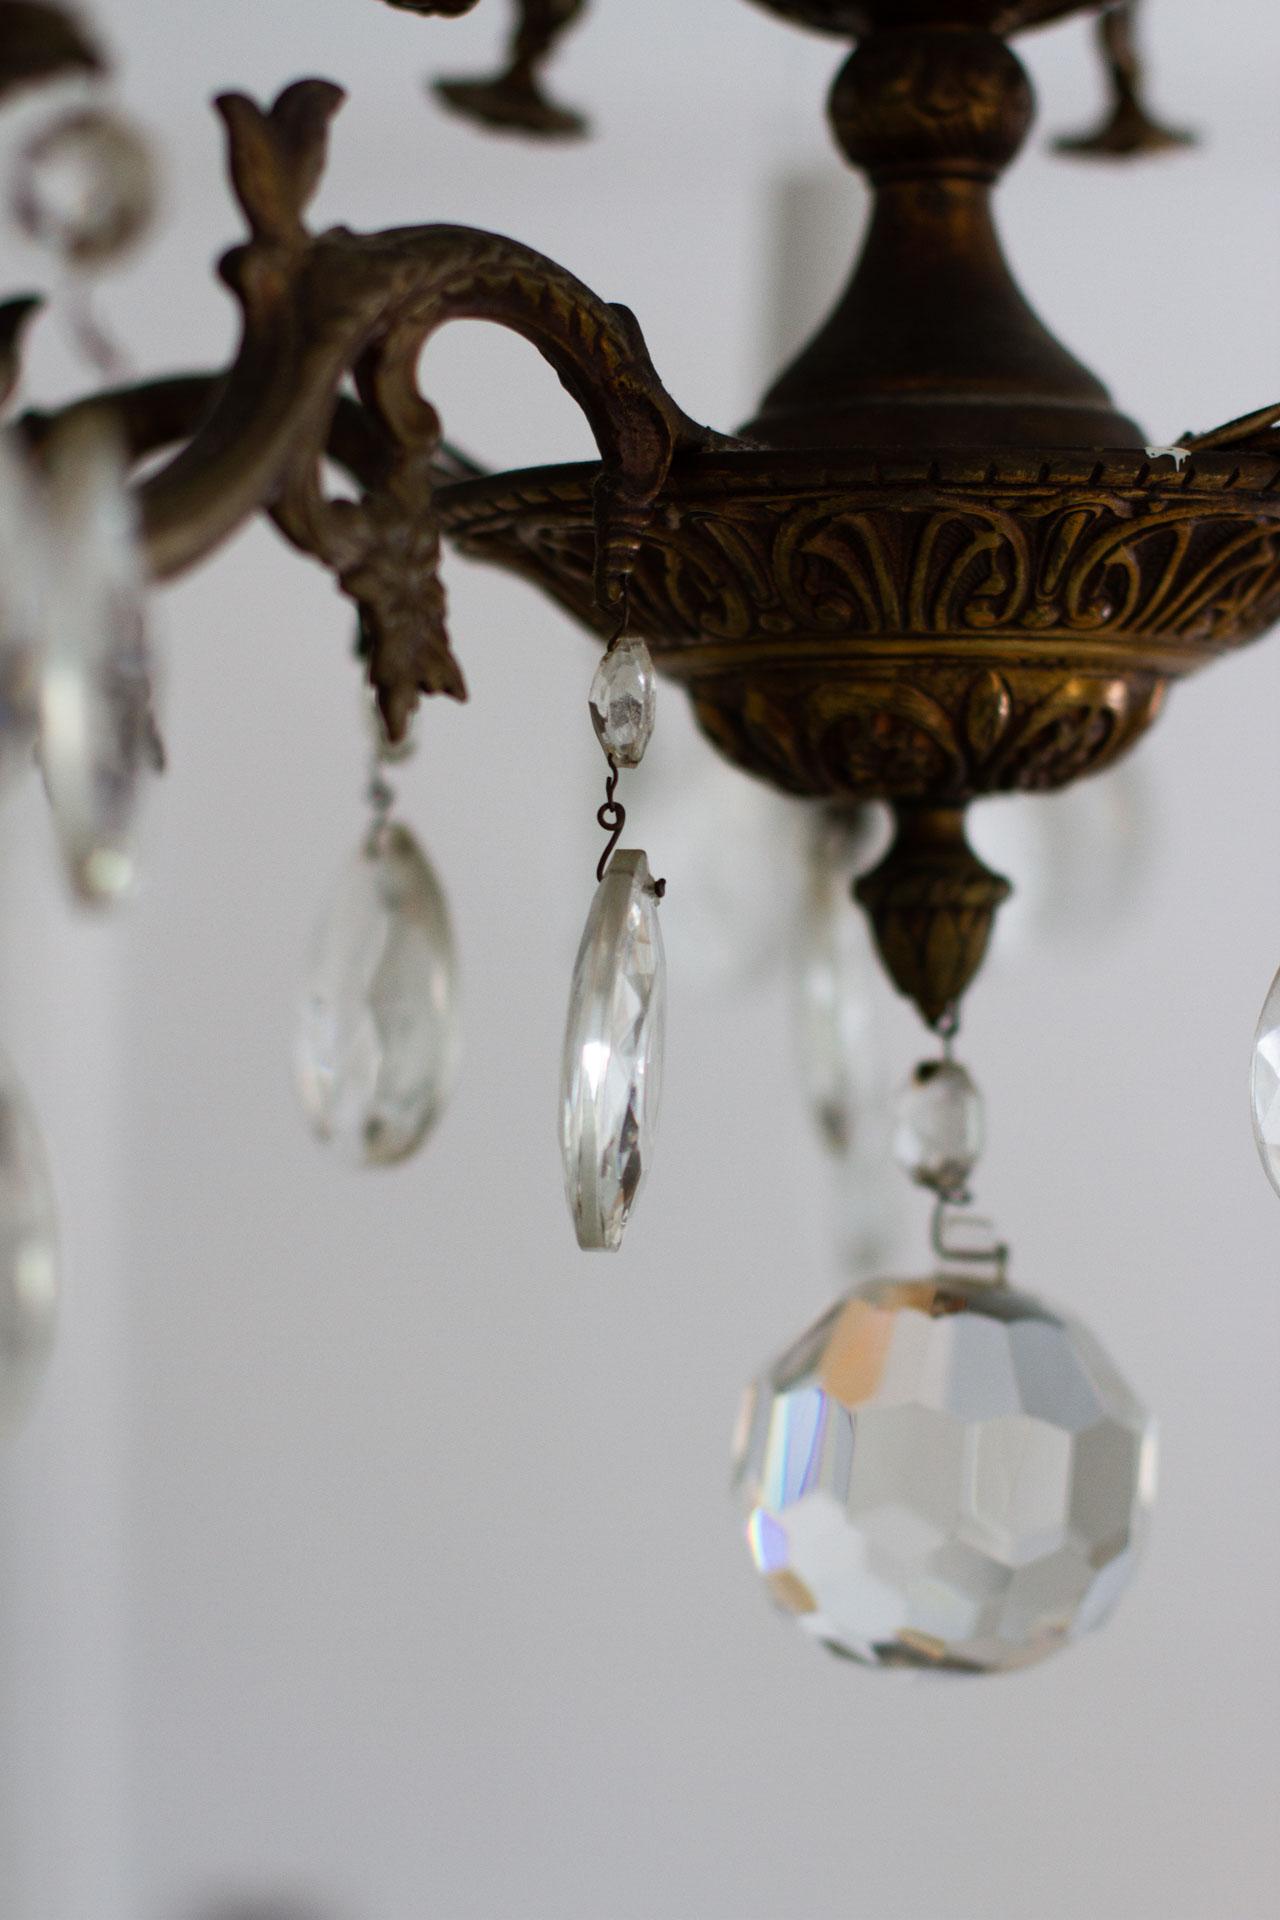 cleaning chandelier | reading my tea leaves